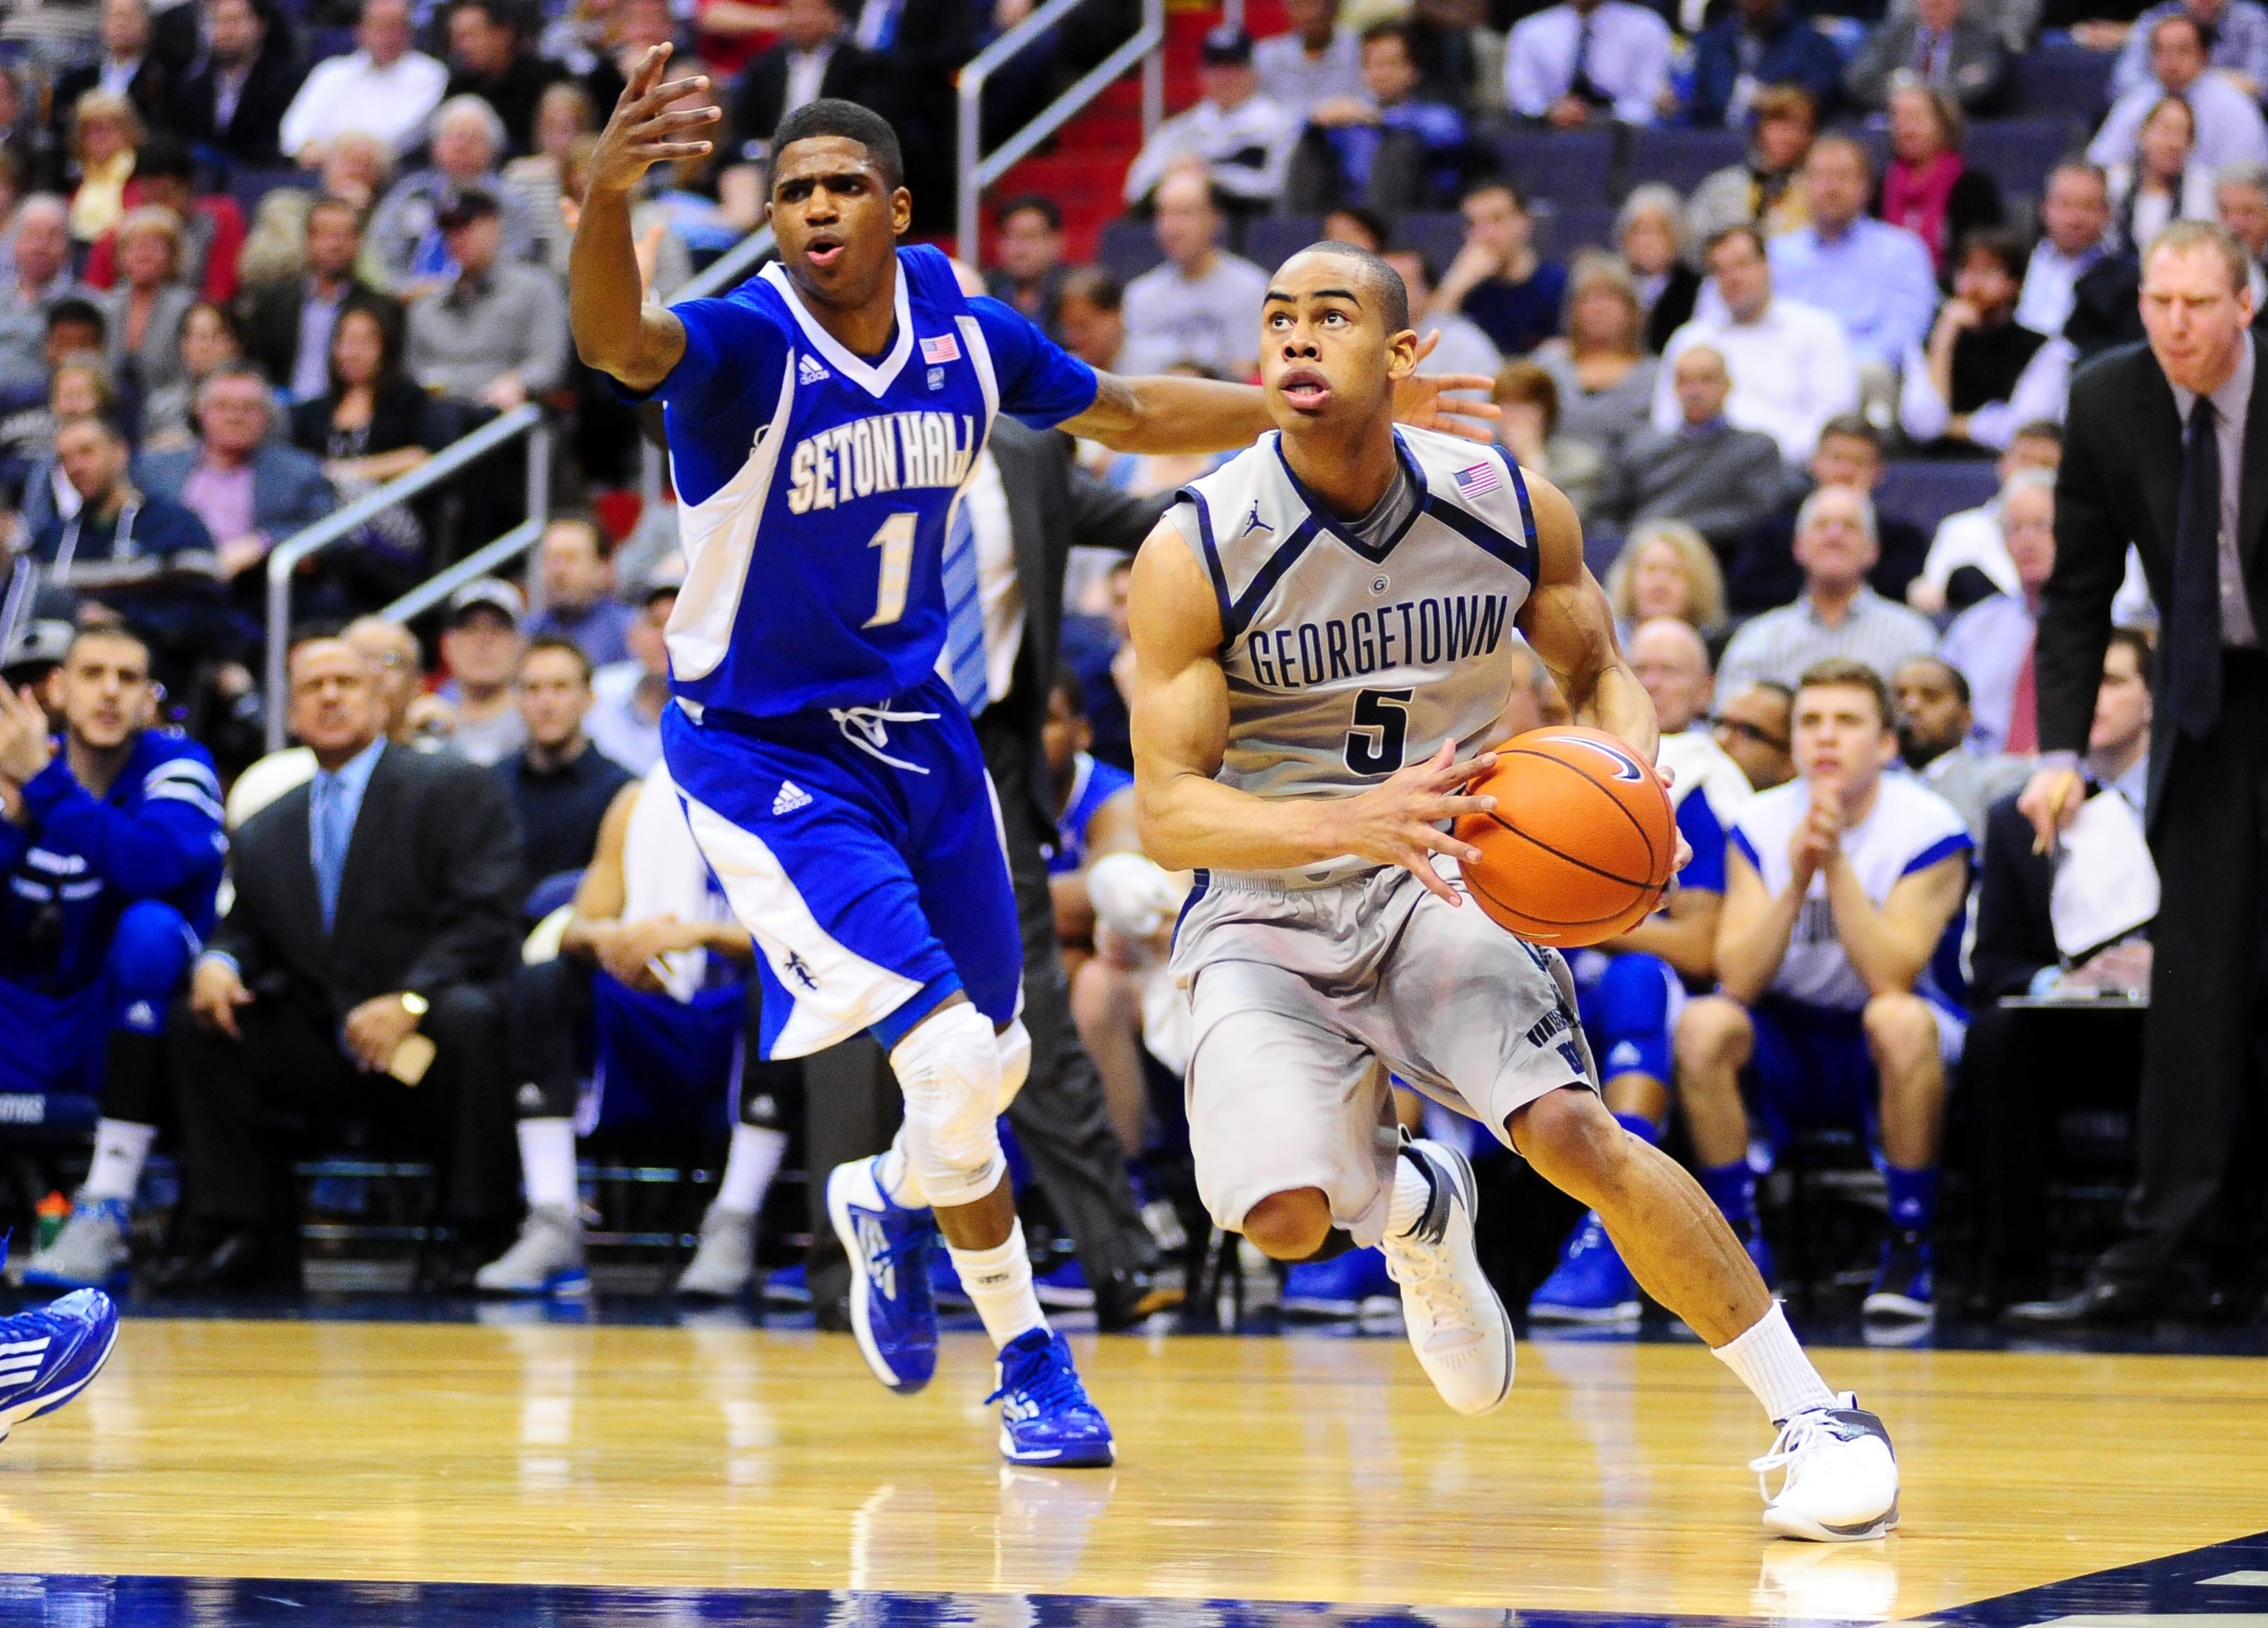 Markel Starks has led the Hoyas back into the Top 25